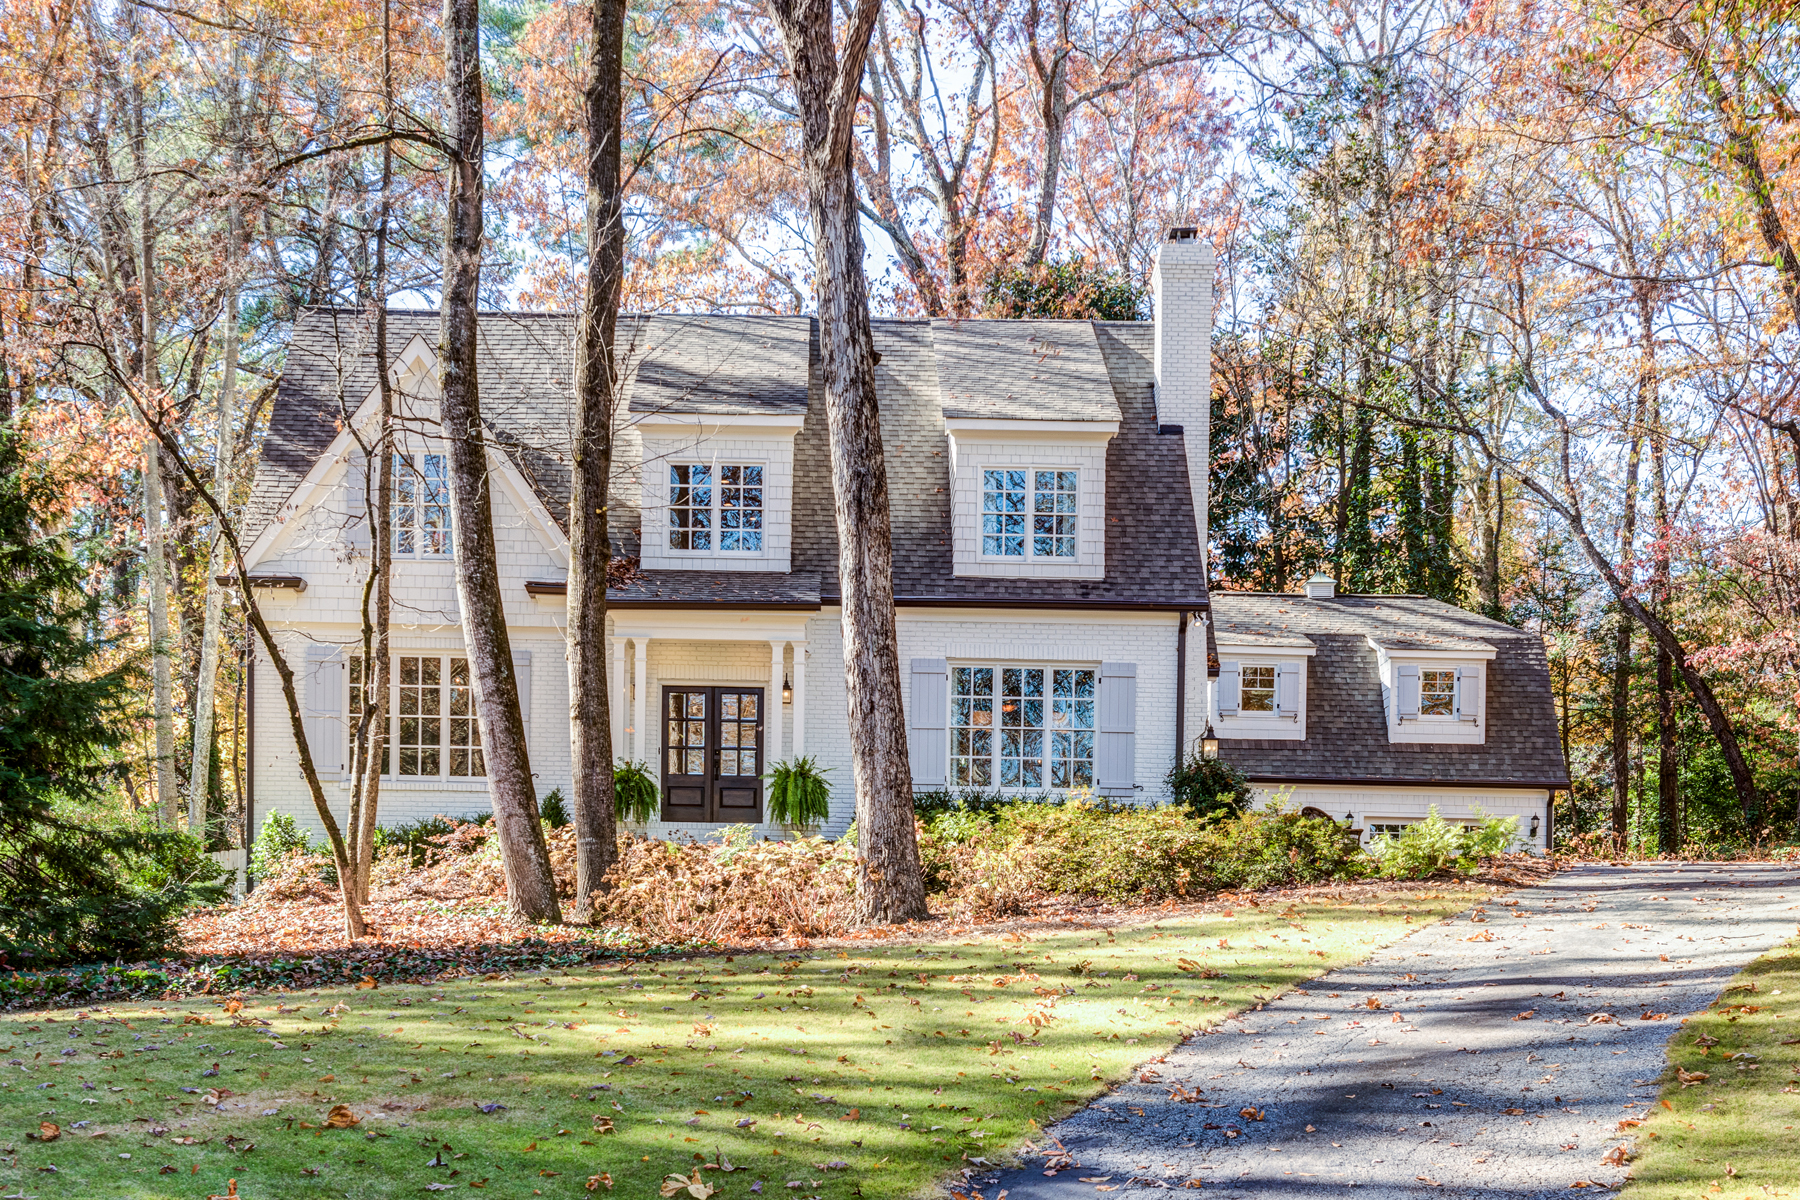 Single Family Home for Sale at Charming Home On Large Lot 4780 Westfield Drive Atlanta, Georgia, 30342 United States